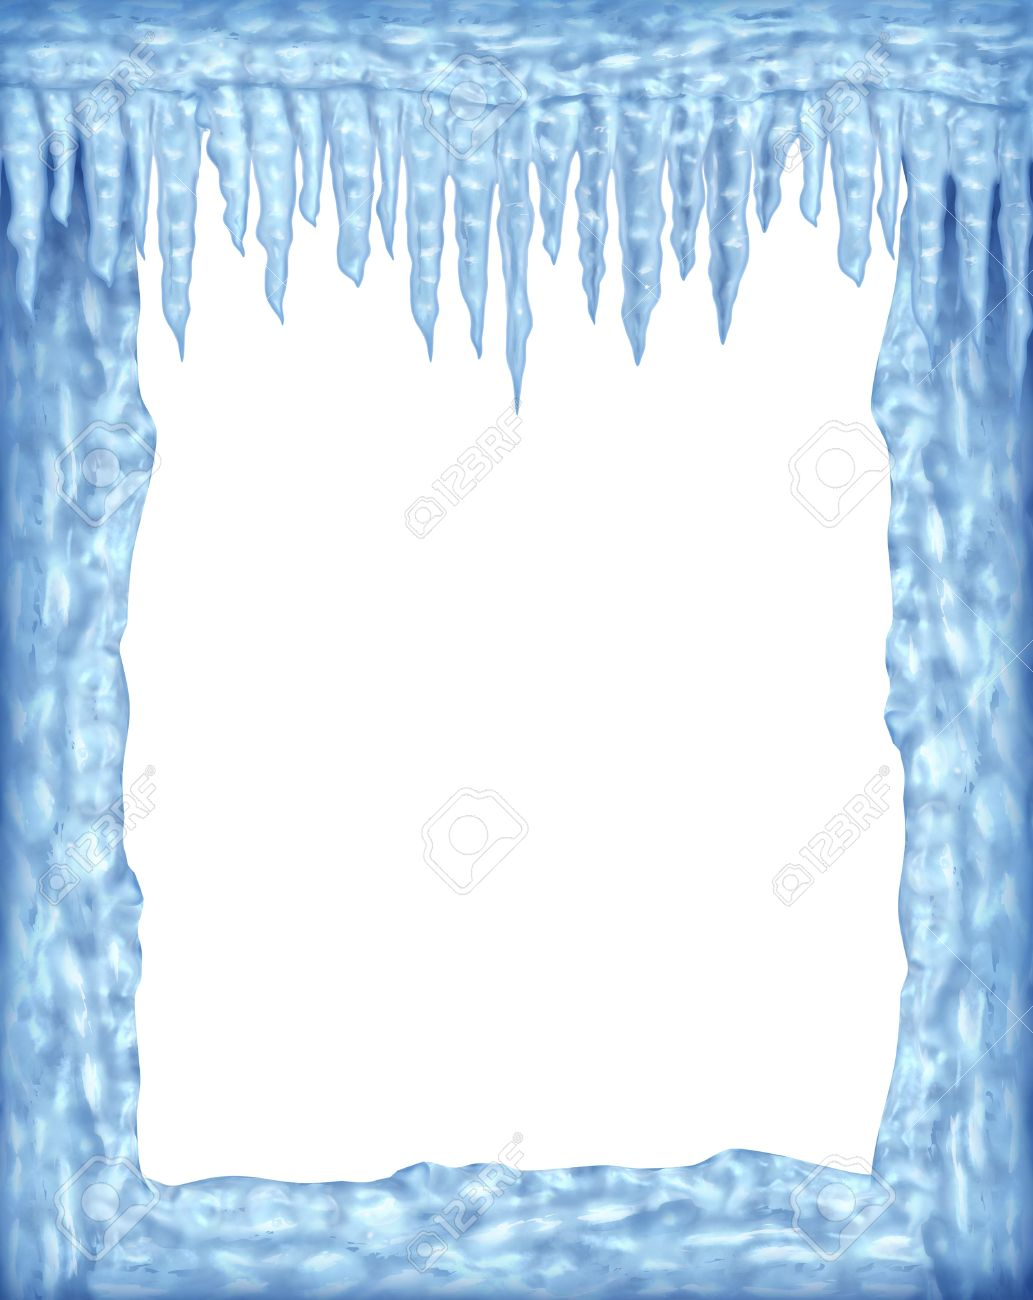 Frozen ice and icicles frame winter design element on a blank white background representing the cold arctic weather and low freezing  temperatures resulting in hanging shiny transparent ice crystals. Stock Photo - 11718576